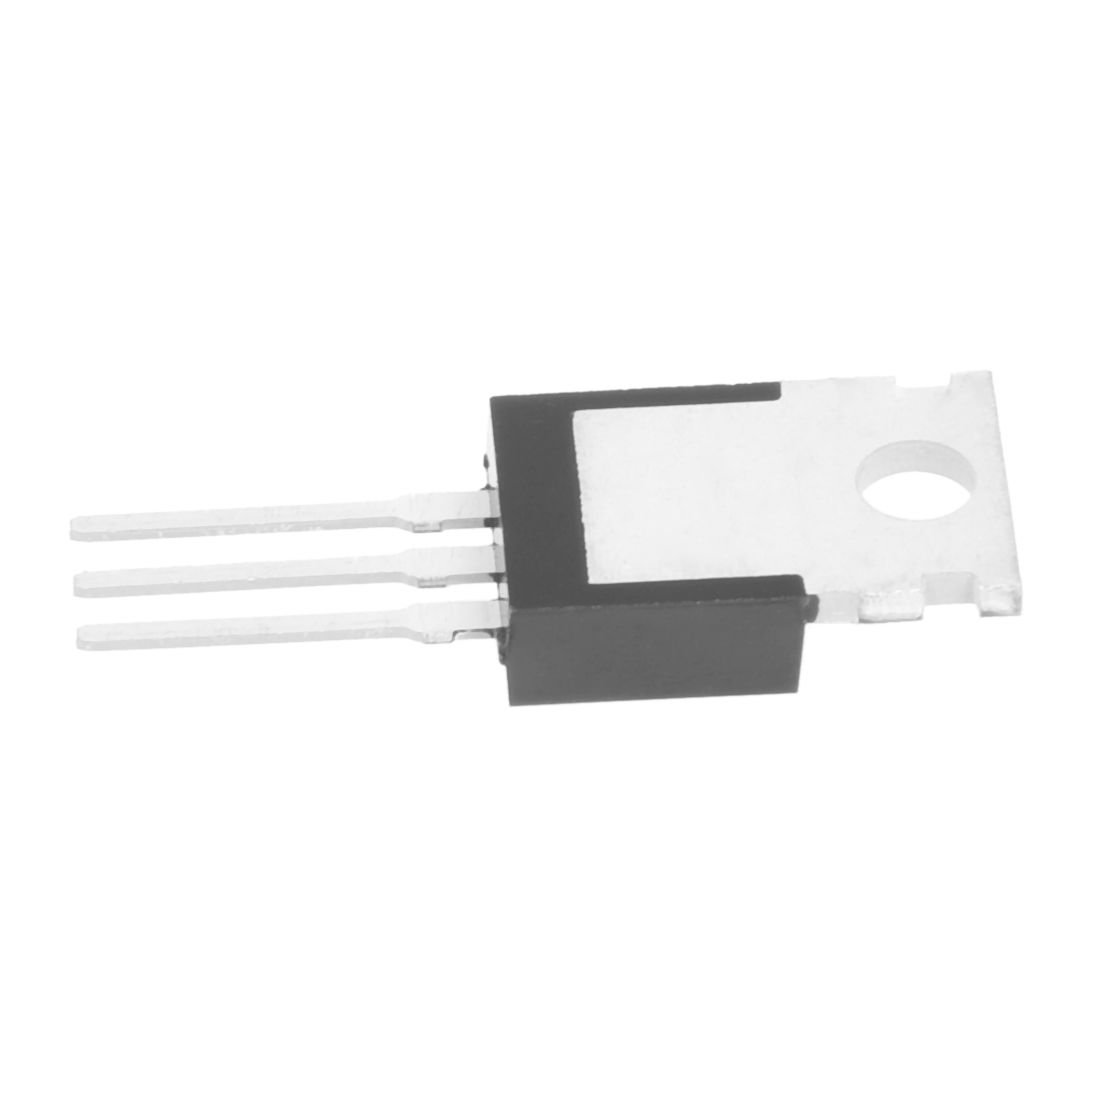 Globalflashdeal 5 Pcs IRF530 100V 14A MOSFET de puissance a canal N TO-200AB